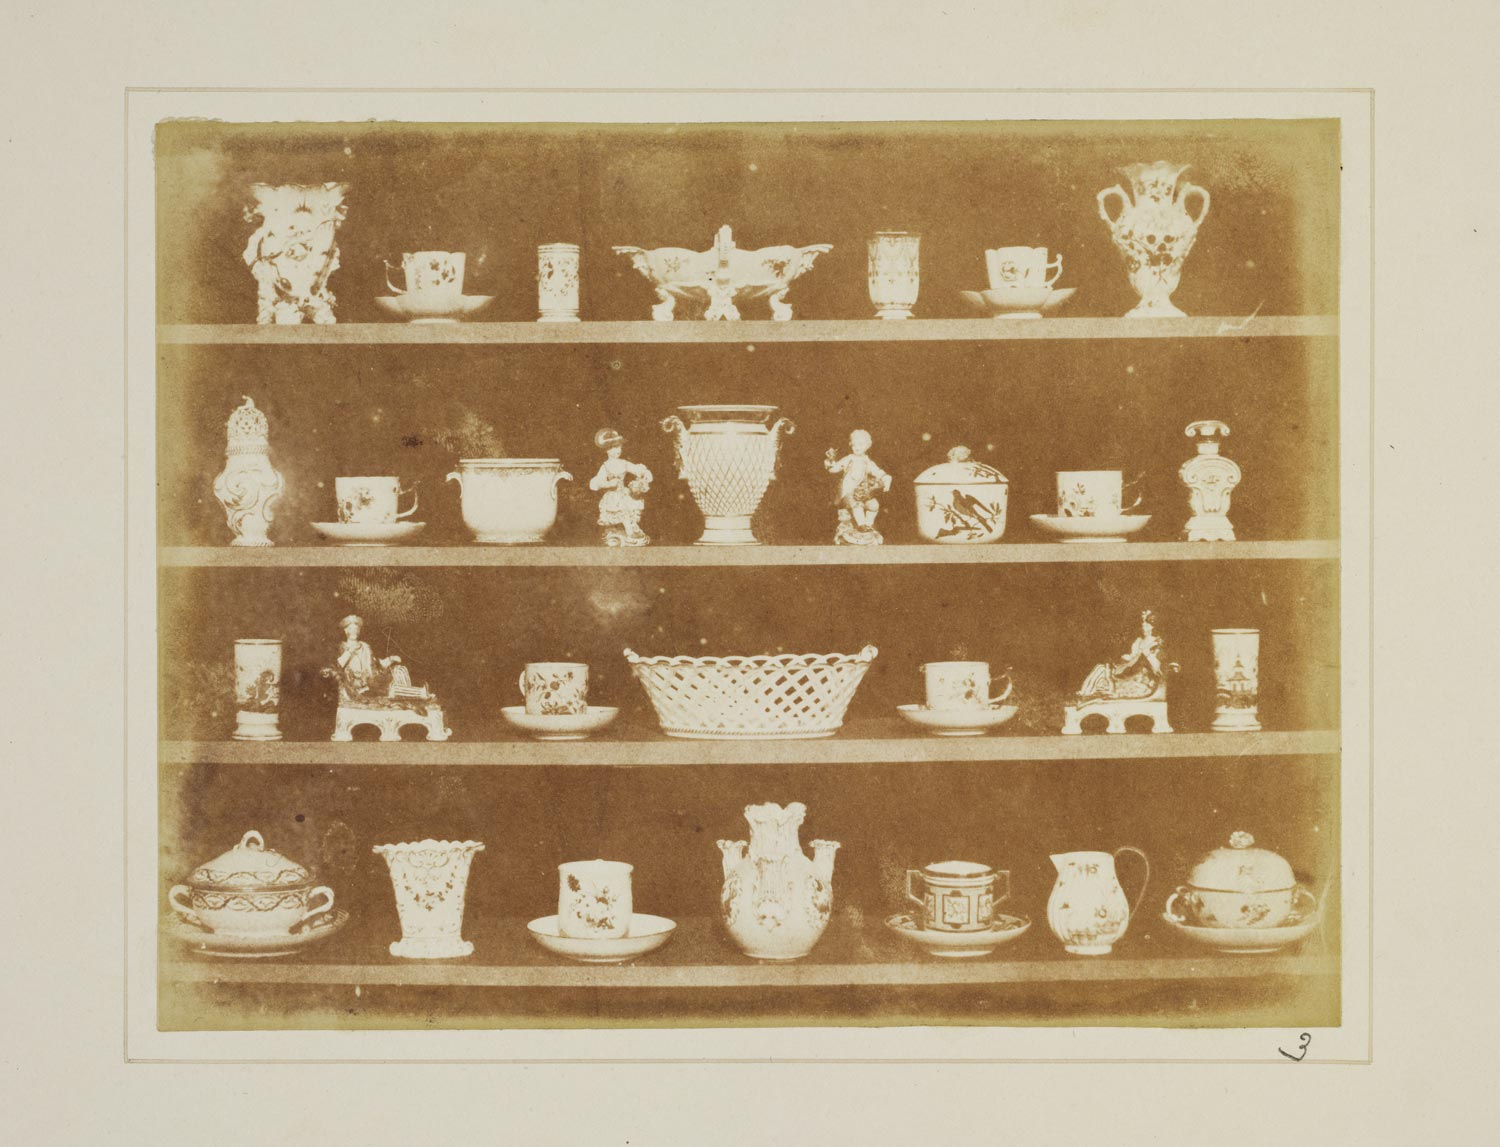 sepia toned image of a shelf containing objects made from china